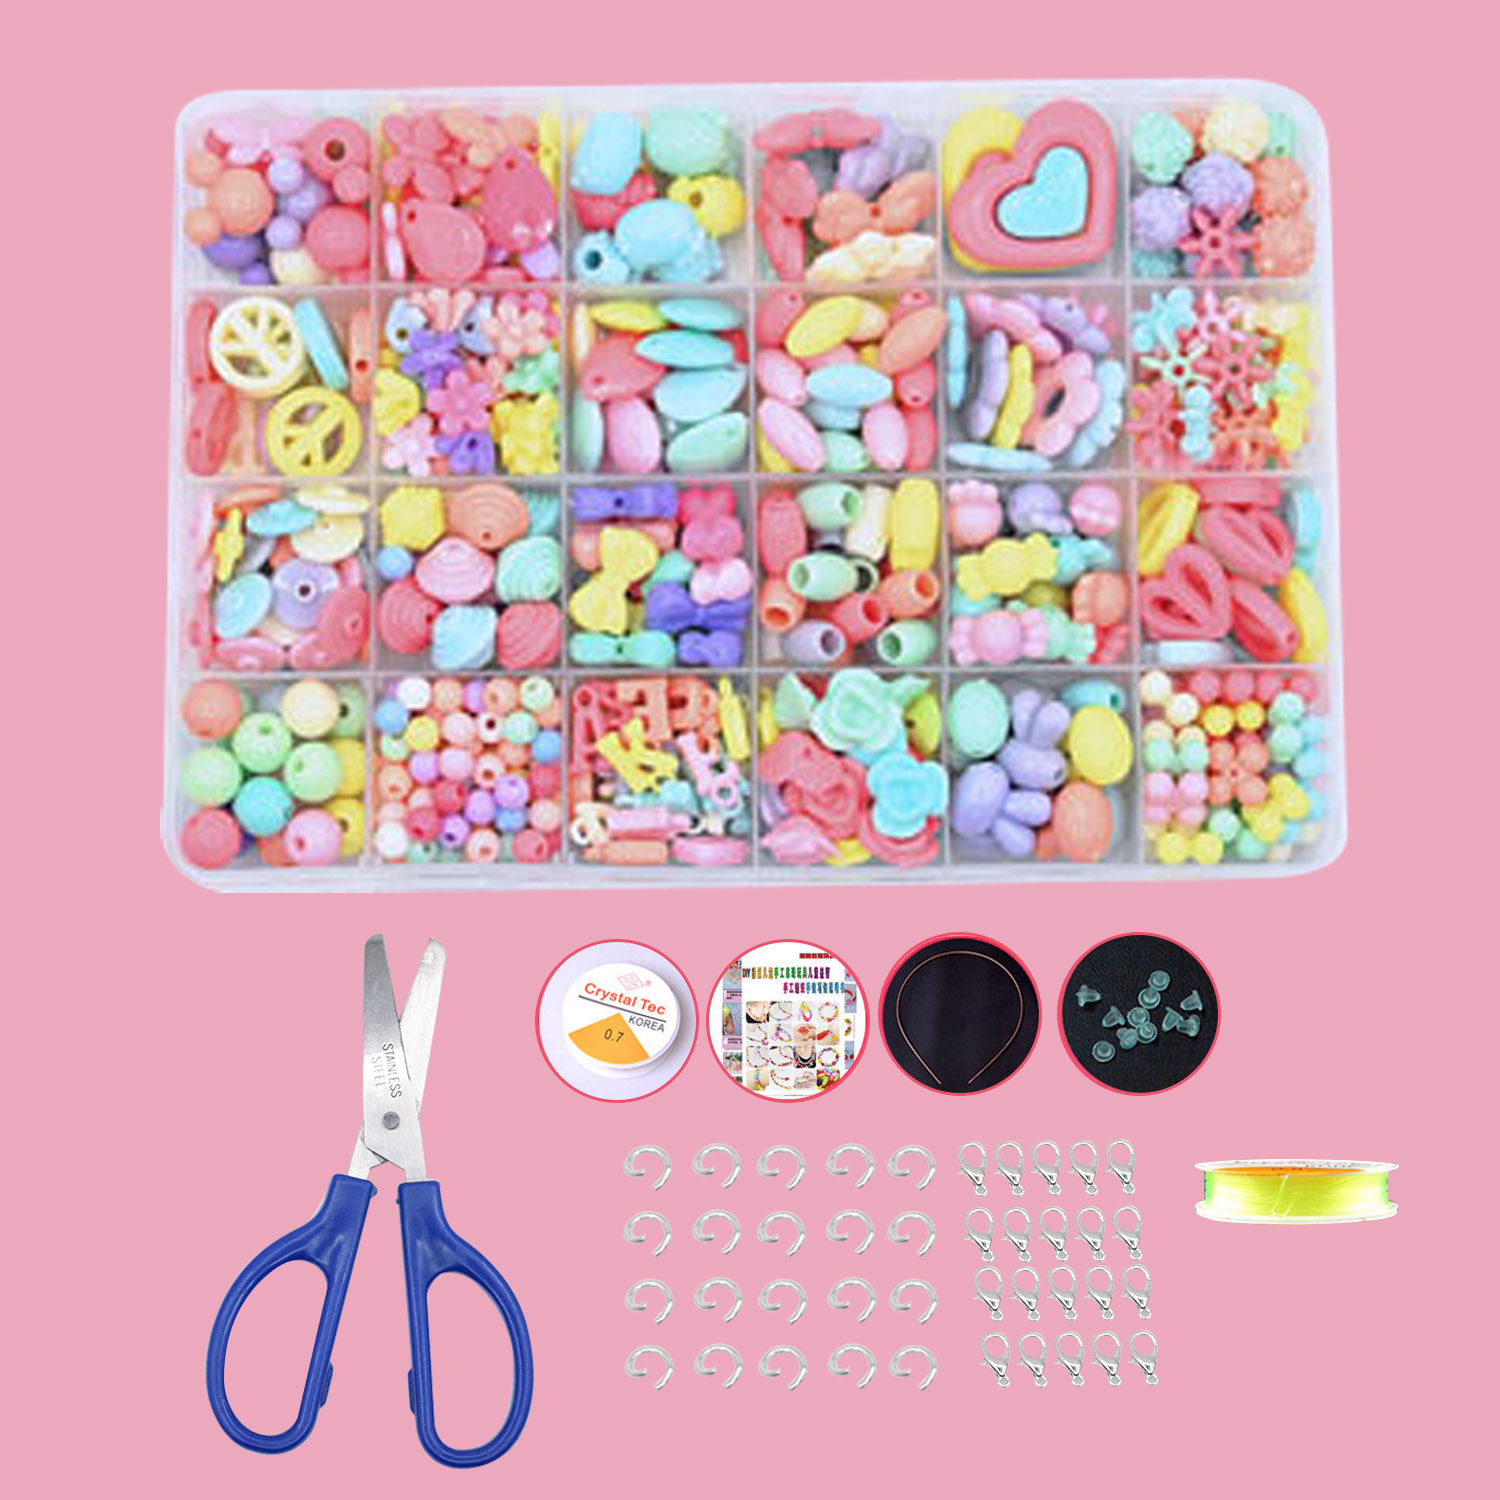 479pcs 24 Different Types Acrylic DIY Toy String Beads Set Kit For Kids Jewelry Making Diy Hands-on Ability Kid Educational Toy